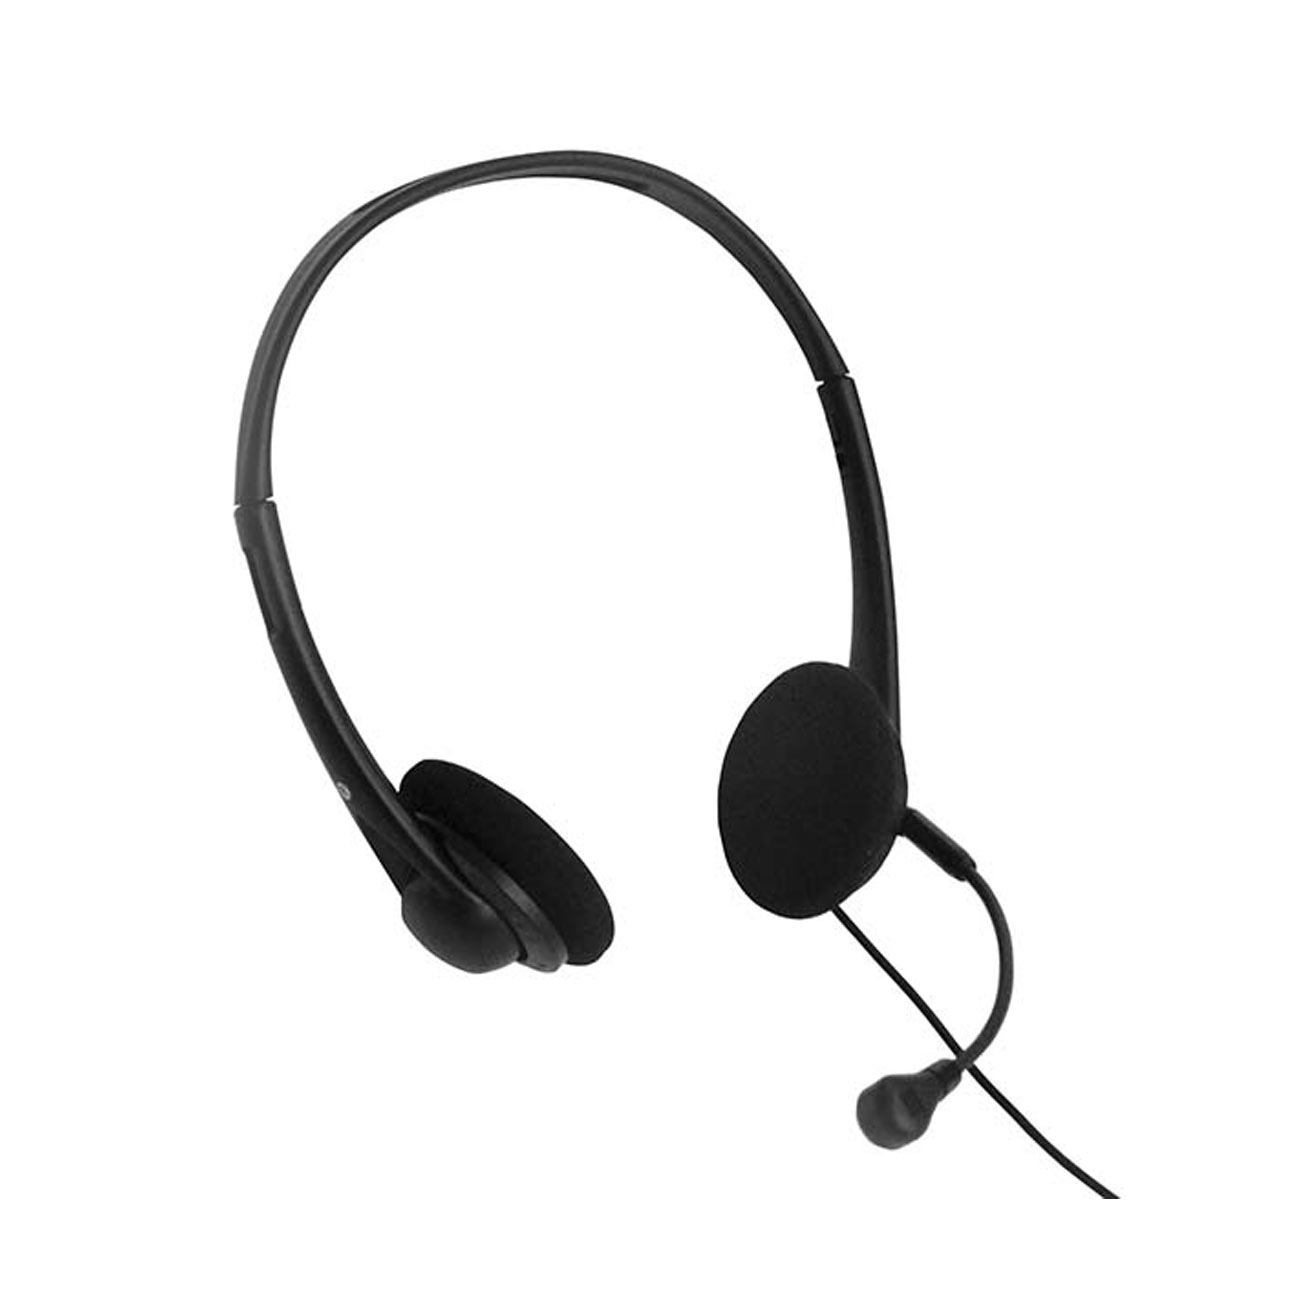 ClearSounds HD500 Hands-free Binaural Headset